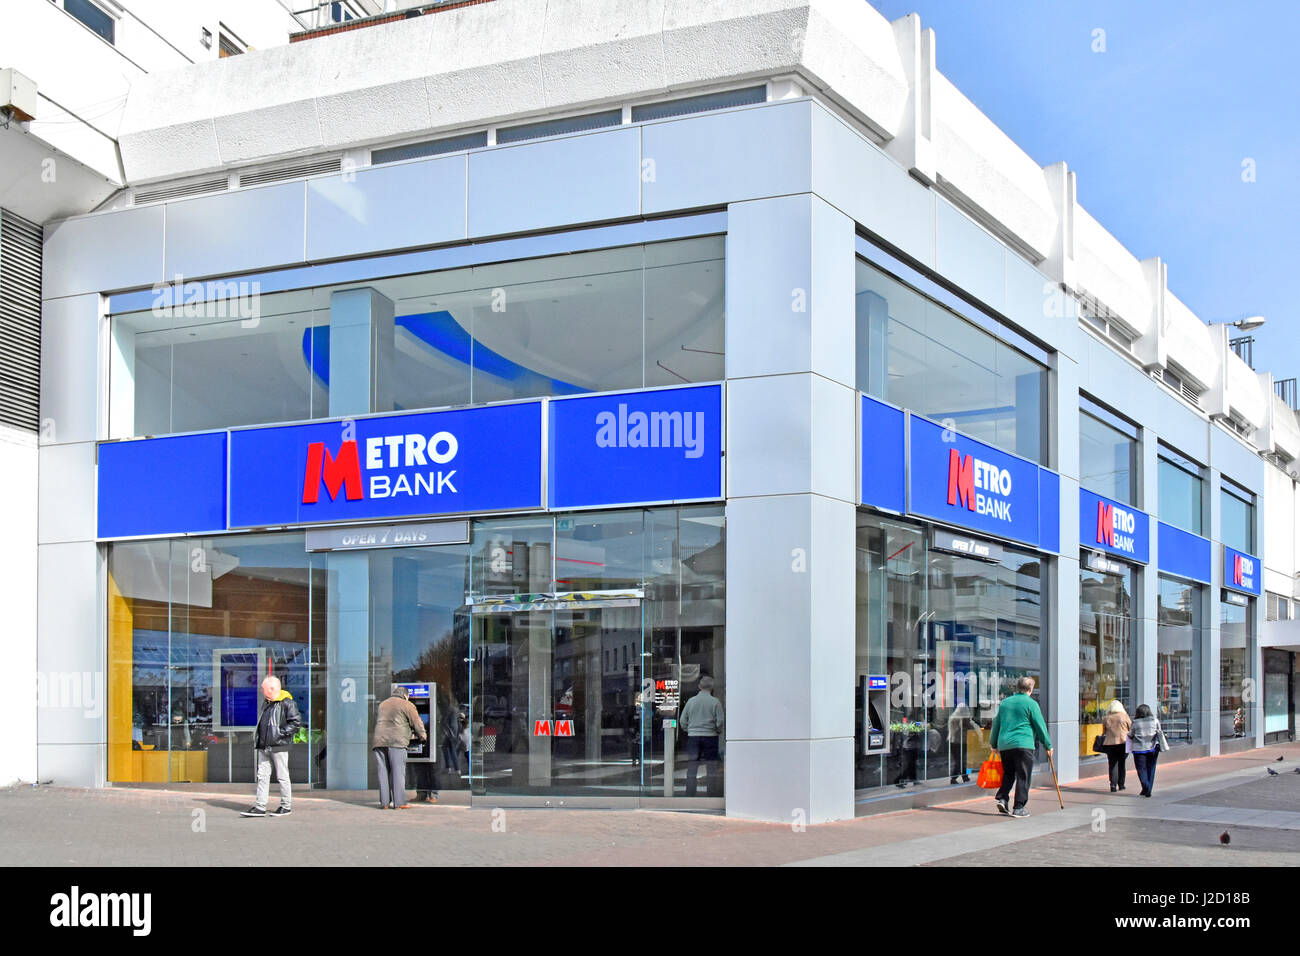 Metro Bank branch signs and logos on a corner site High Street Southend on Sea Essex England UK atm cash point machines - Stock Image